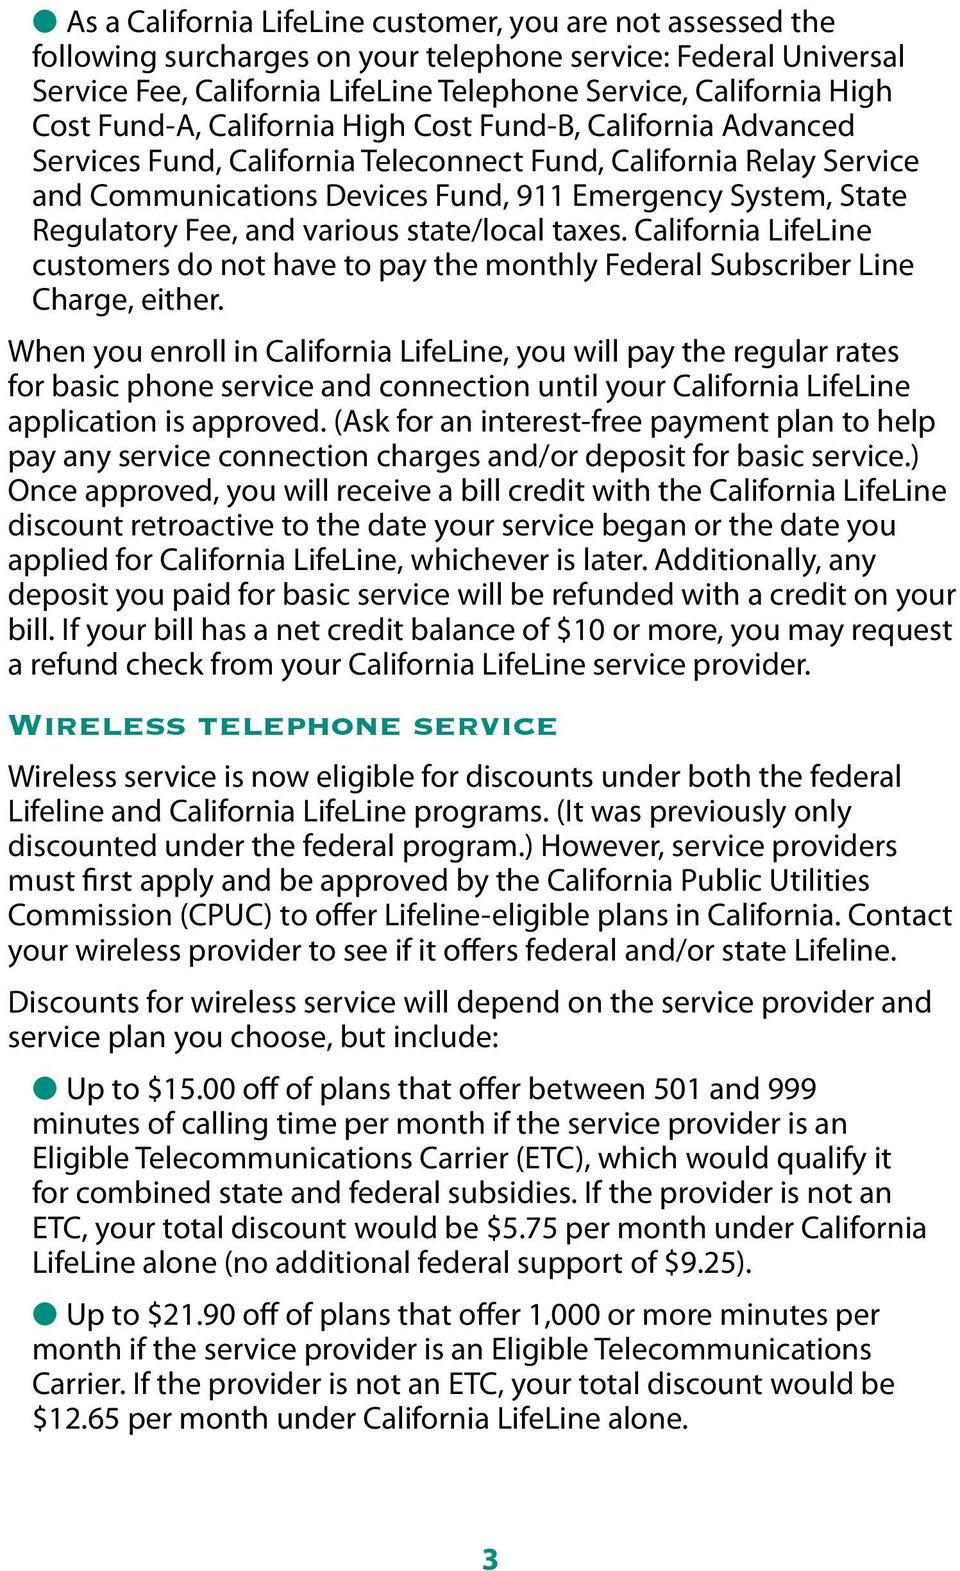 Fee, and various state/local taxes. California LifeLine customers do not have to pay the monthly Federal Subscriber Line Charge, either.